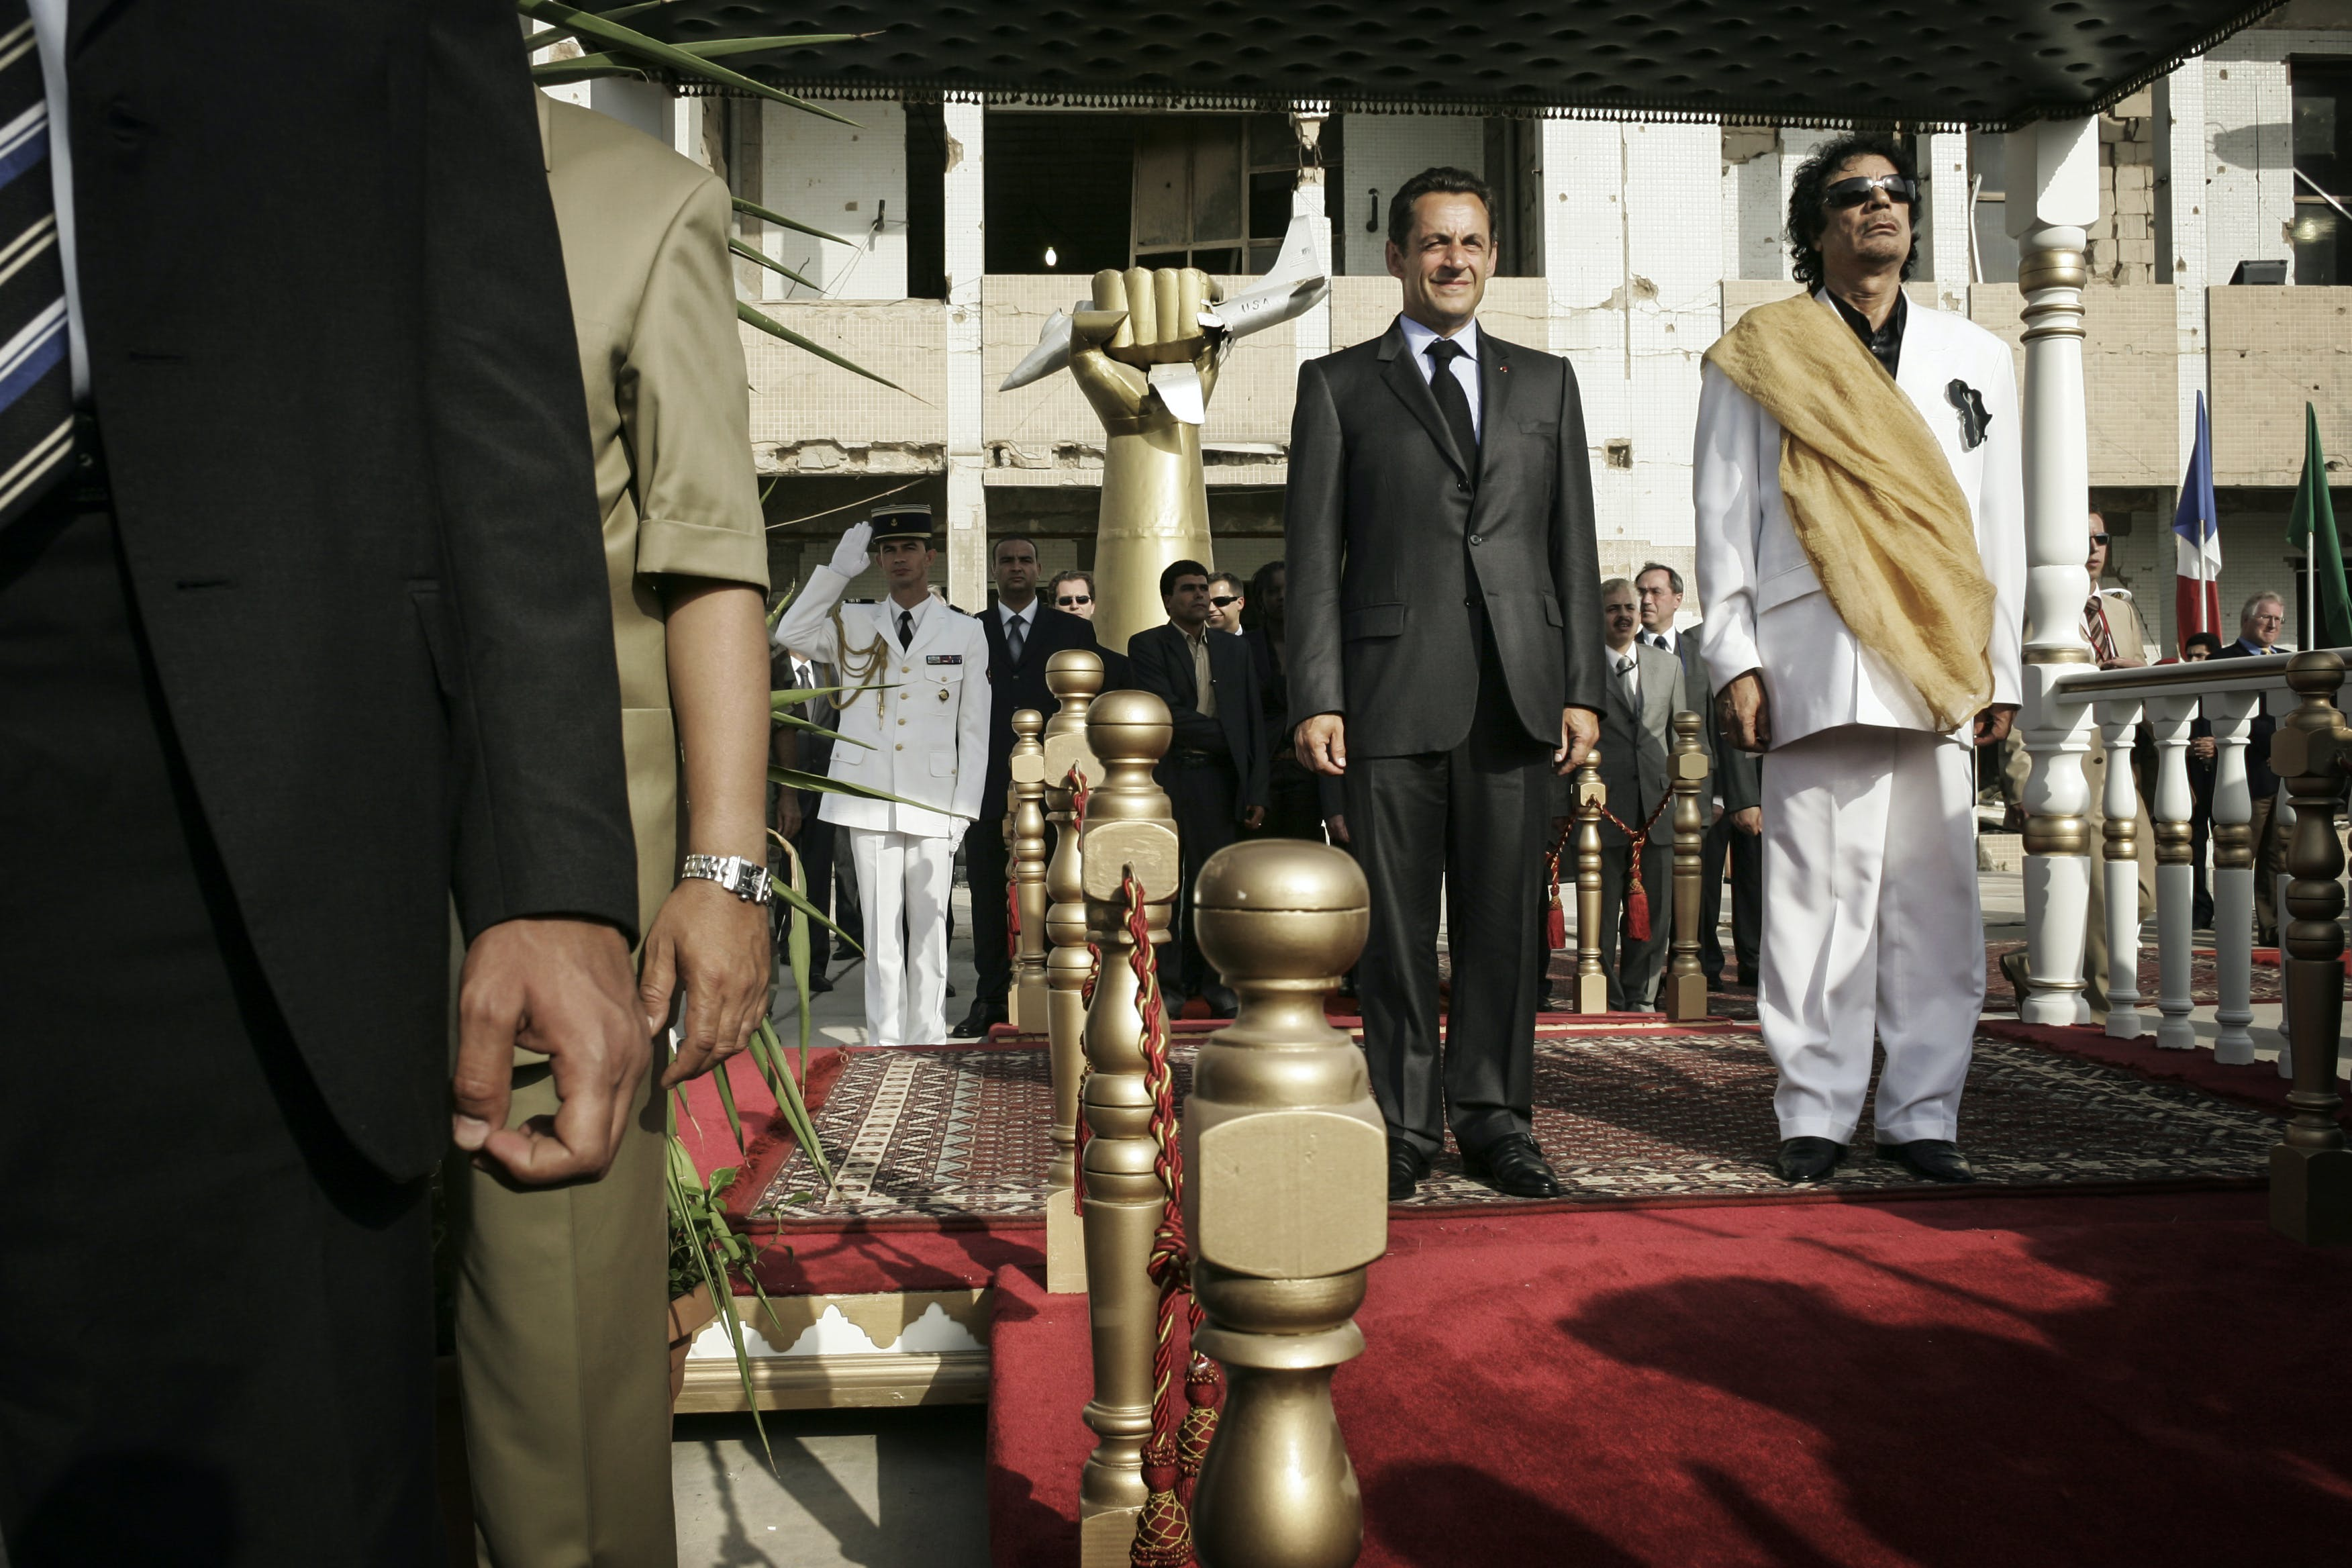 TRIPOLI,LIBYA - JULY 25: French President Nicolas Sarkozy is welcomed by Libyan Leader Muammar Gaddafi at Bab Al Azizya compound during an official visit in Tripoli, July 25th 2007. Both listening to national anthems.(Photo by Etienne de Malglaive/Getty Images)